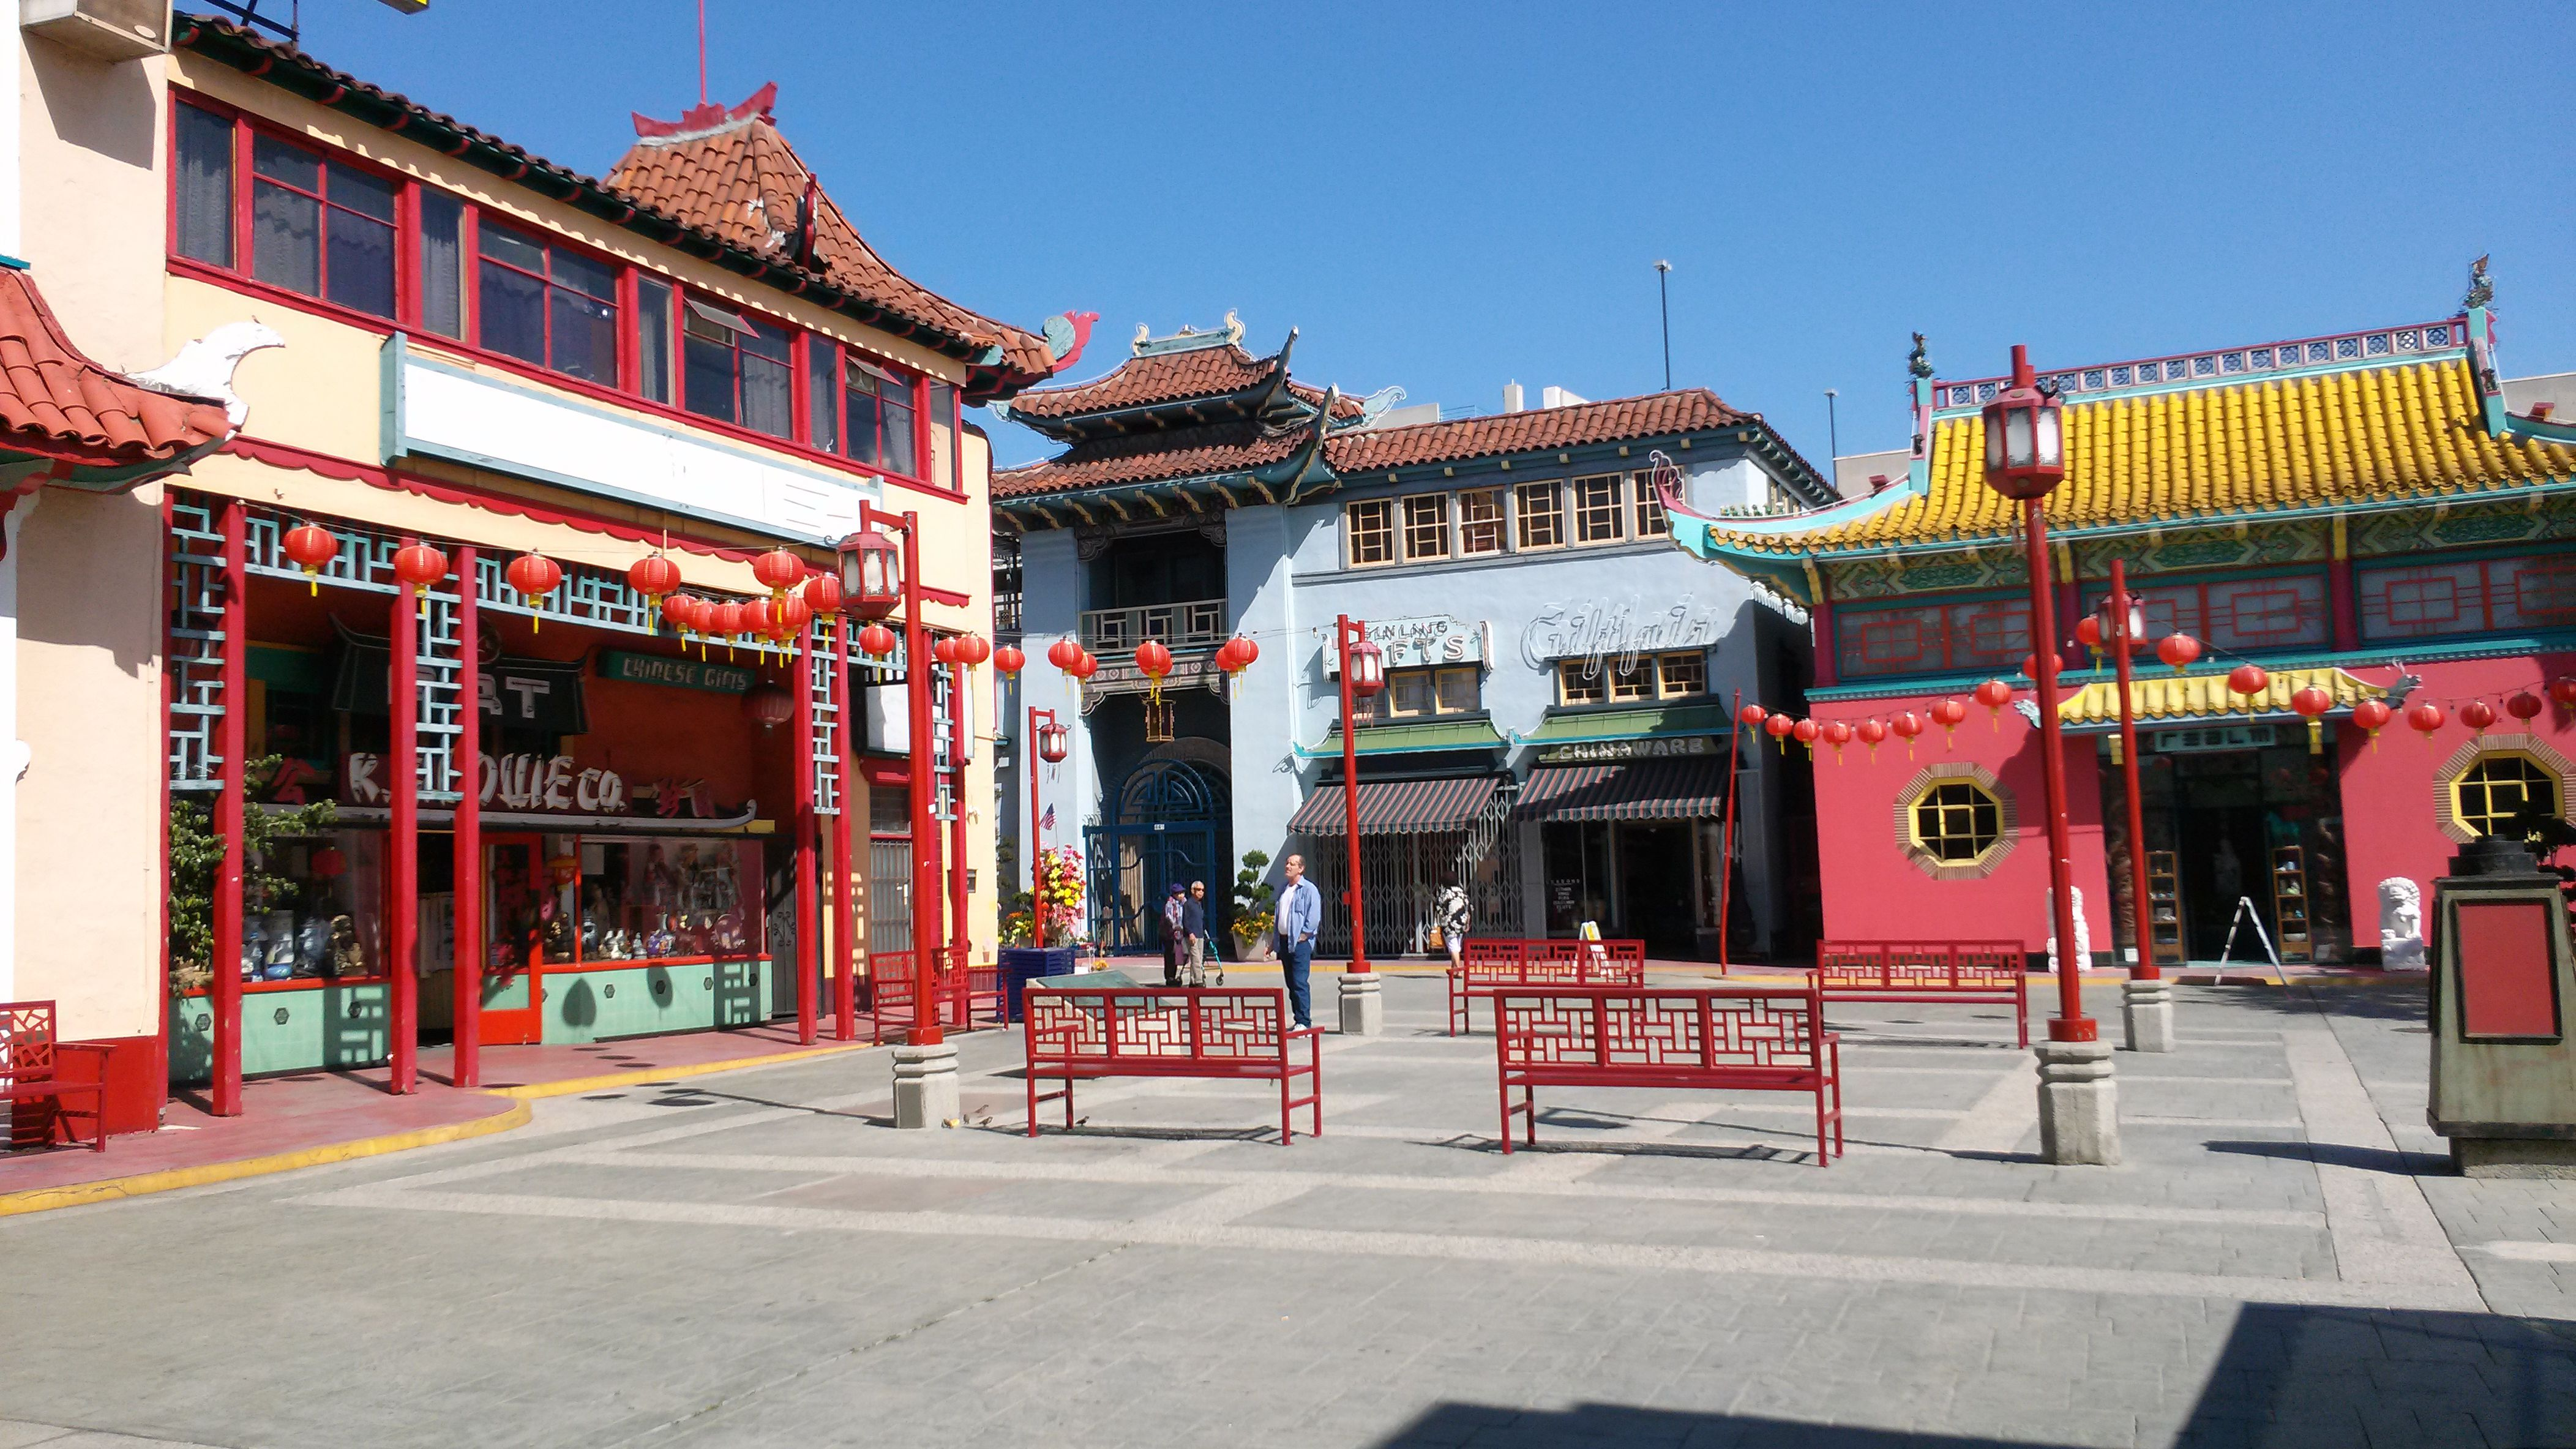 Los Angeles Chinatown Guide and Photo Tour on map of union sq, map of southwest philly, map of chinese theater, map of girard, map of the aquarium, map of the domain, map of roslindale village, map of charles street, map of north avenue beach, map of garden oaks, map of kodak theater, map of identity, map of watts tower, map of san francisco map, map of washington square west, map of san francisco cable car, map of broadway district, map of washington bridge, map of columbia point, map of central district,